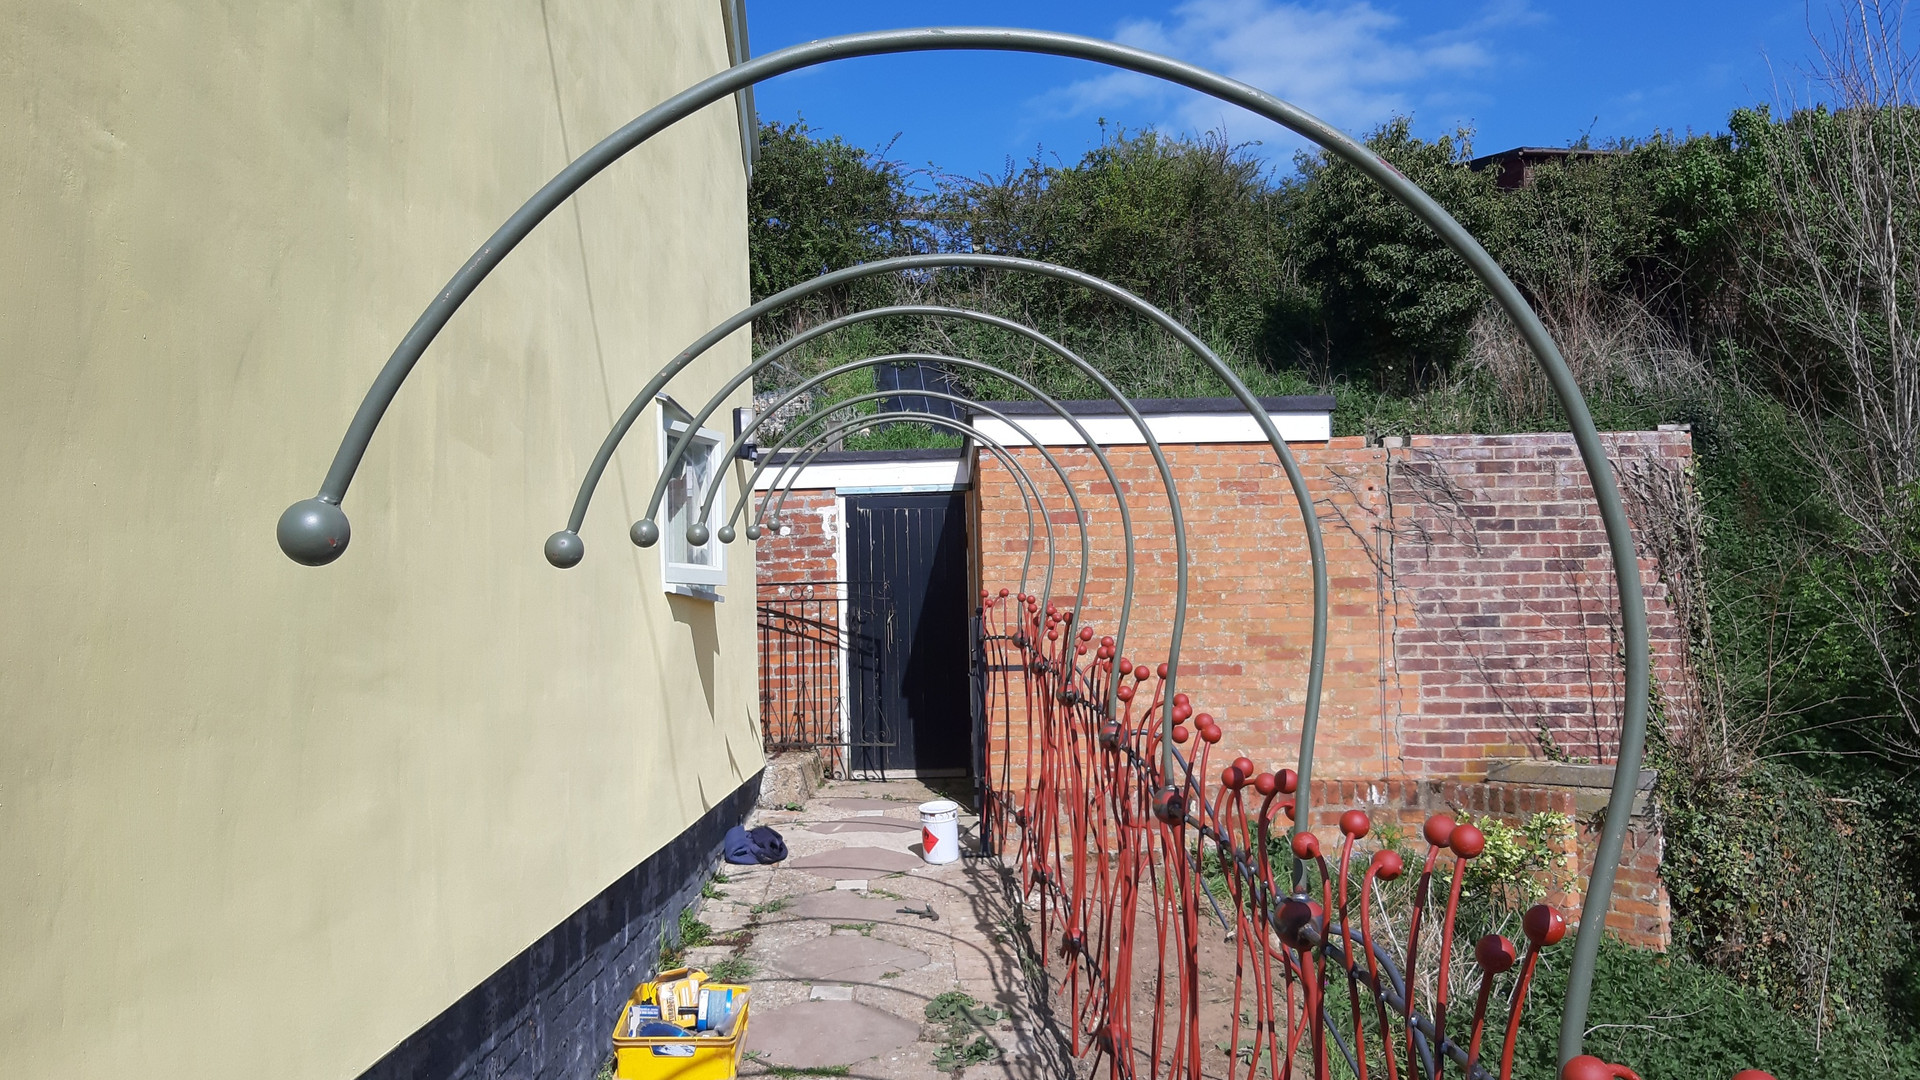 Half covered archway